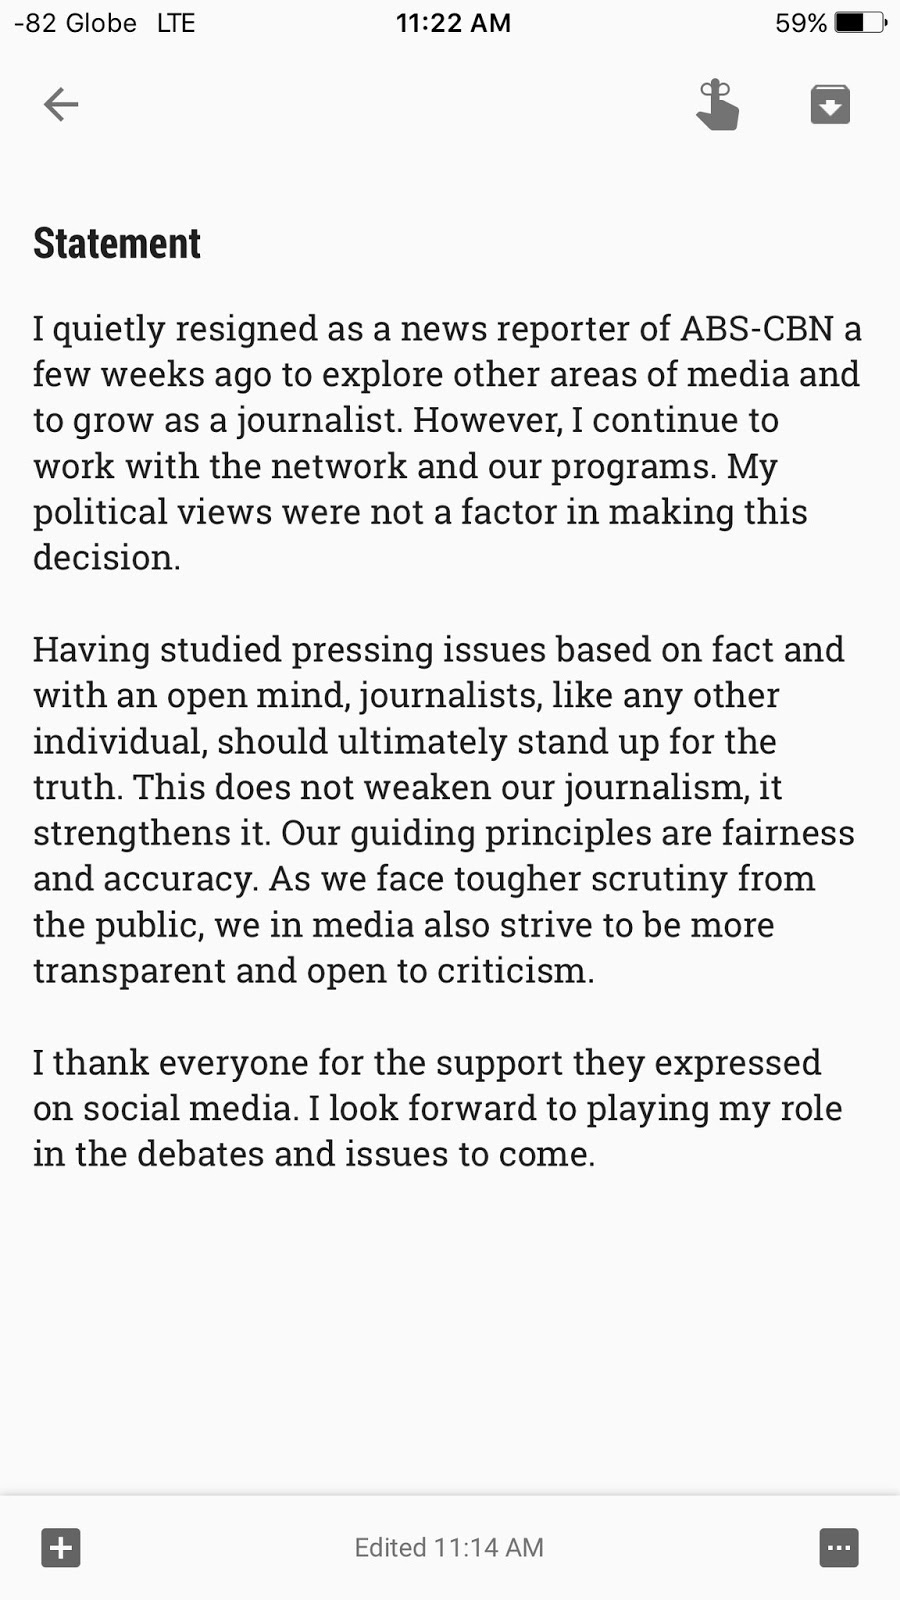 Atom Araullo on Sunday has released statement